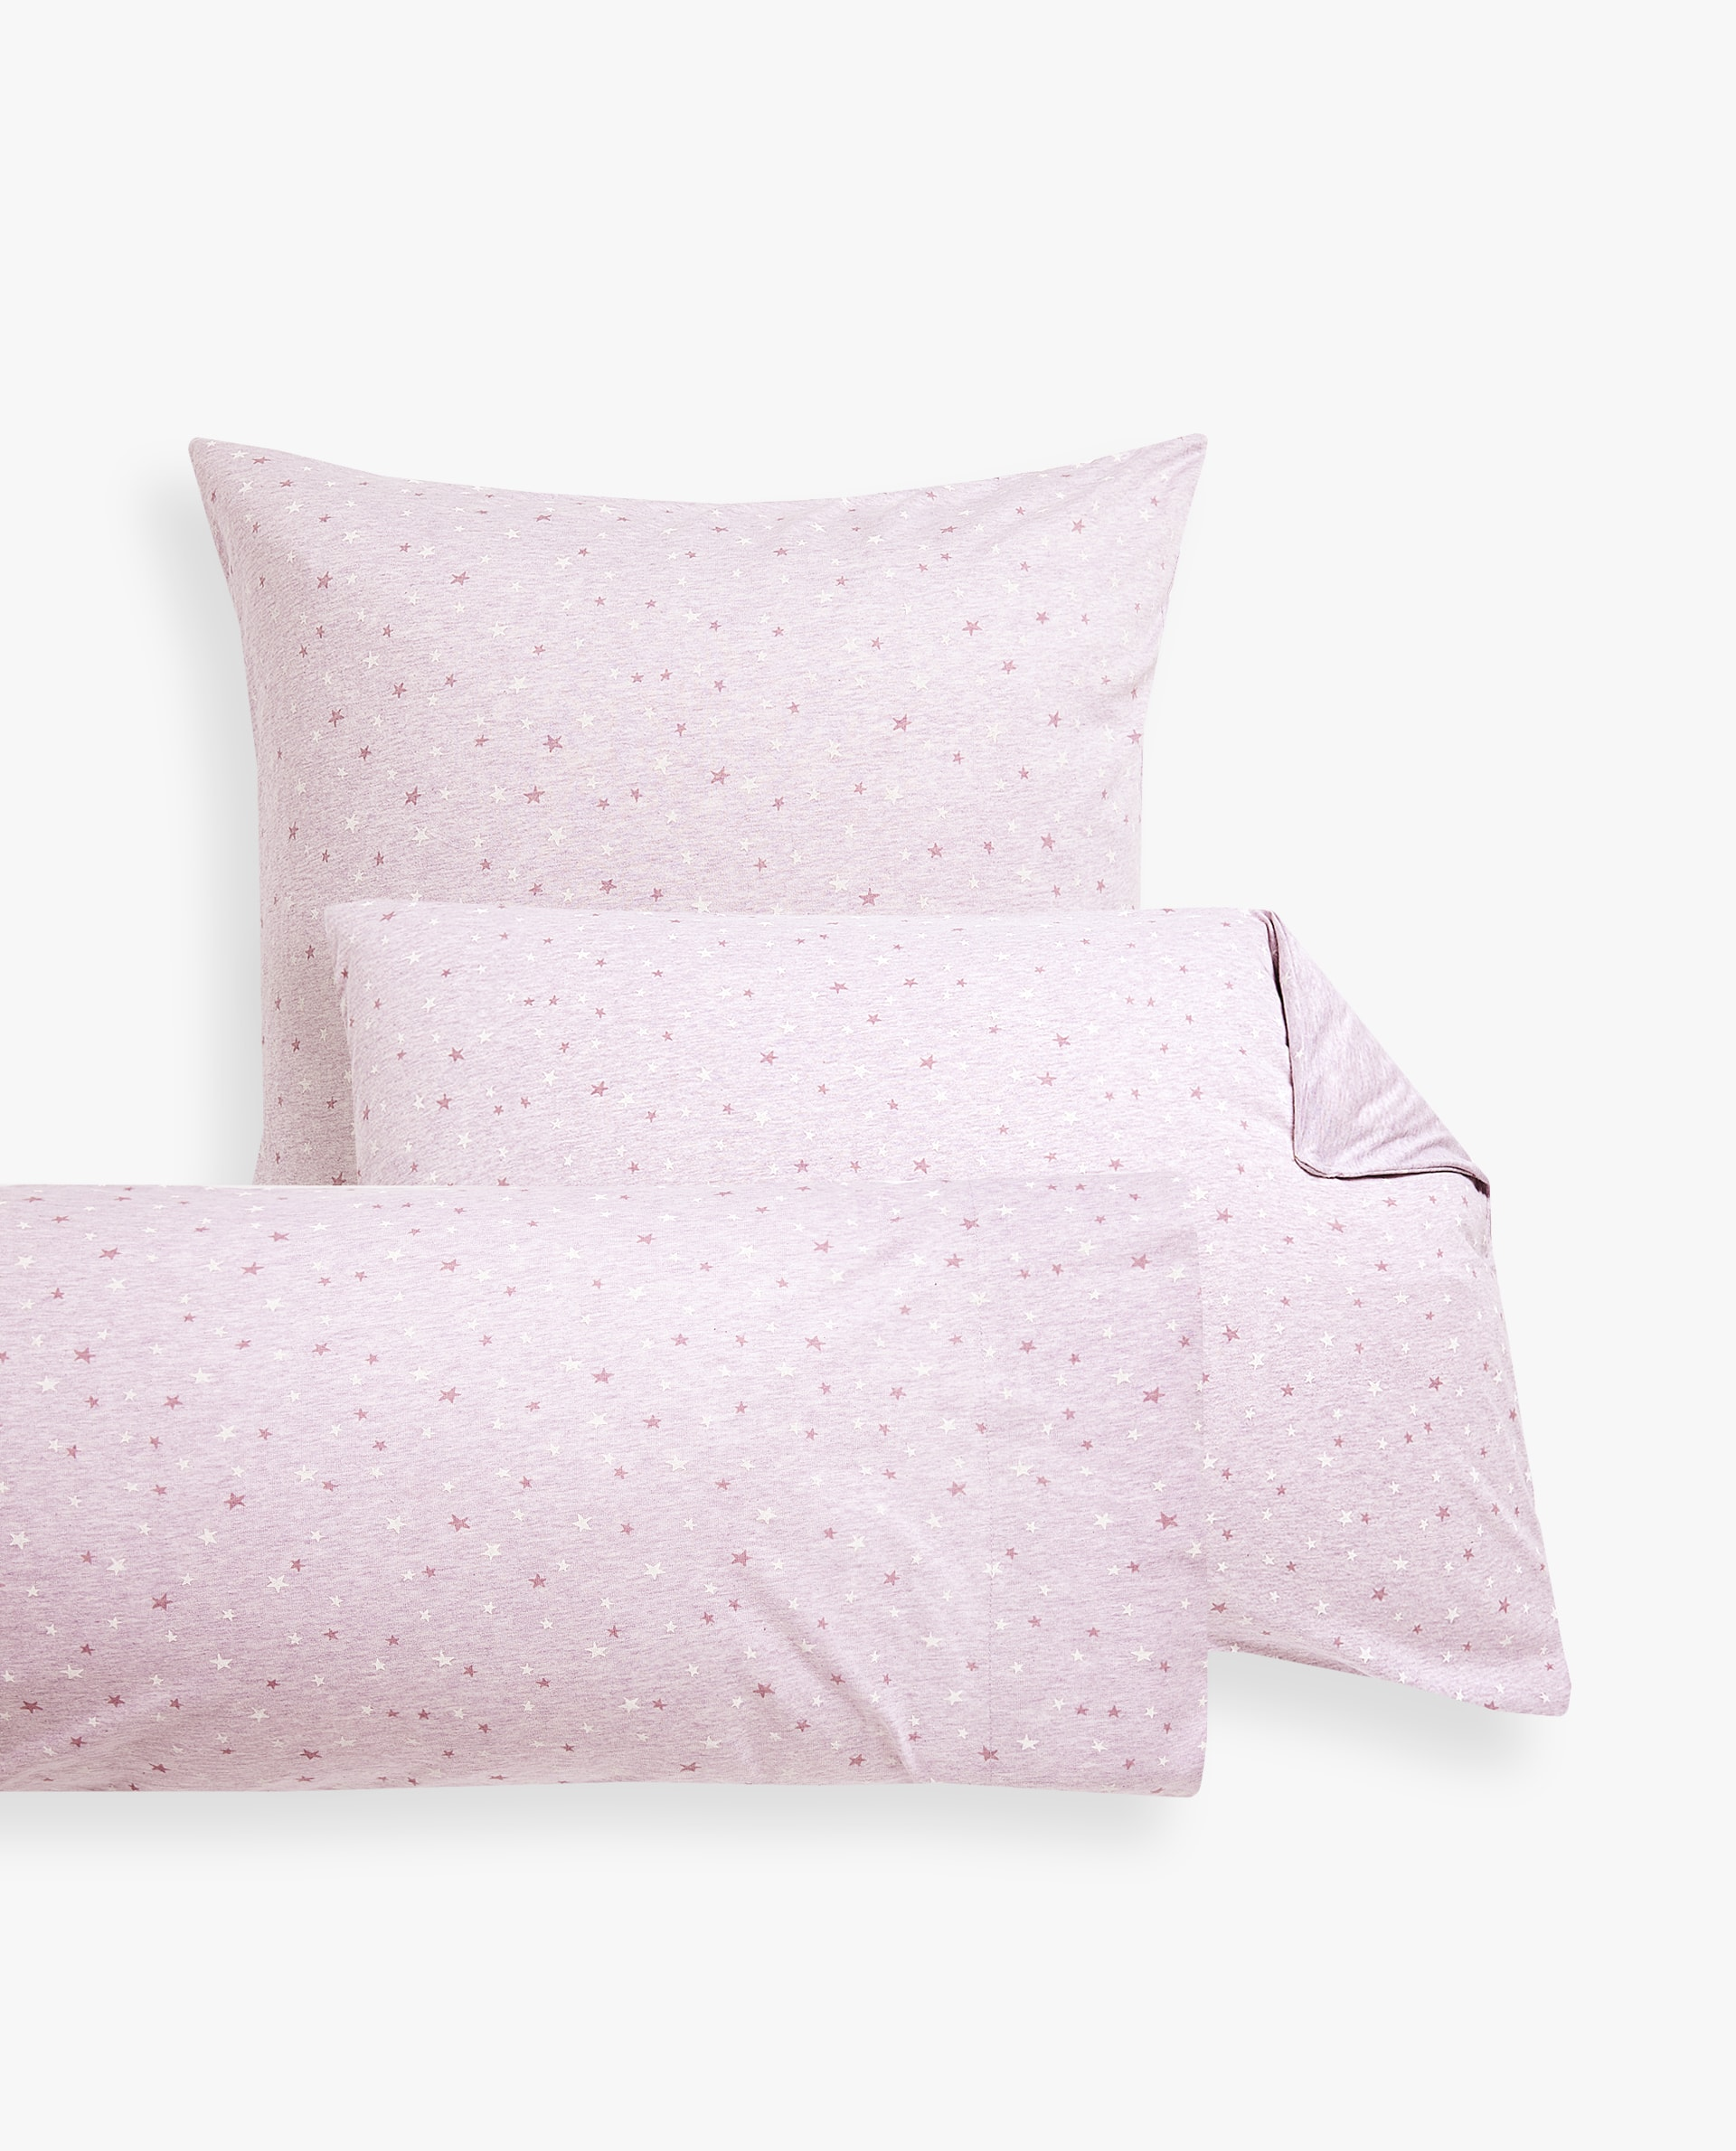 Star Print Cotton Jersey Pillowcase